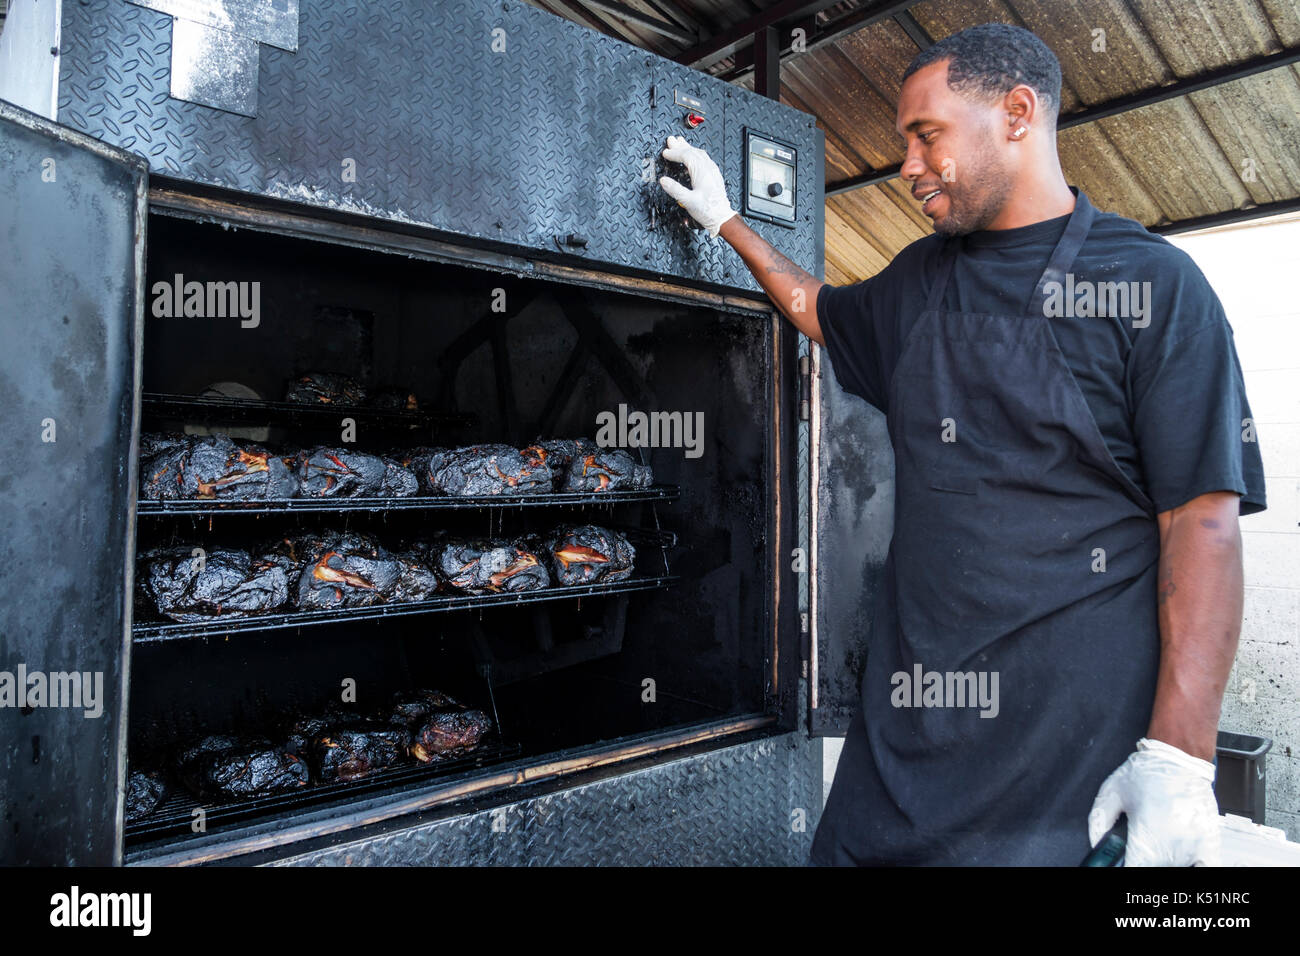 St. Saint Simons Island Georgia Southern Soul Barbeque restaurant BBQ outdoor smoker Black man cook cooked meat - Stock Image